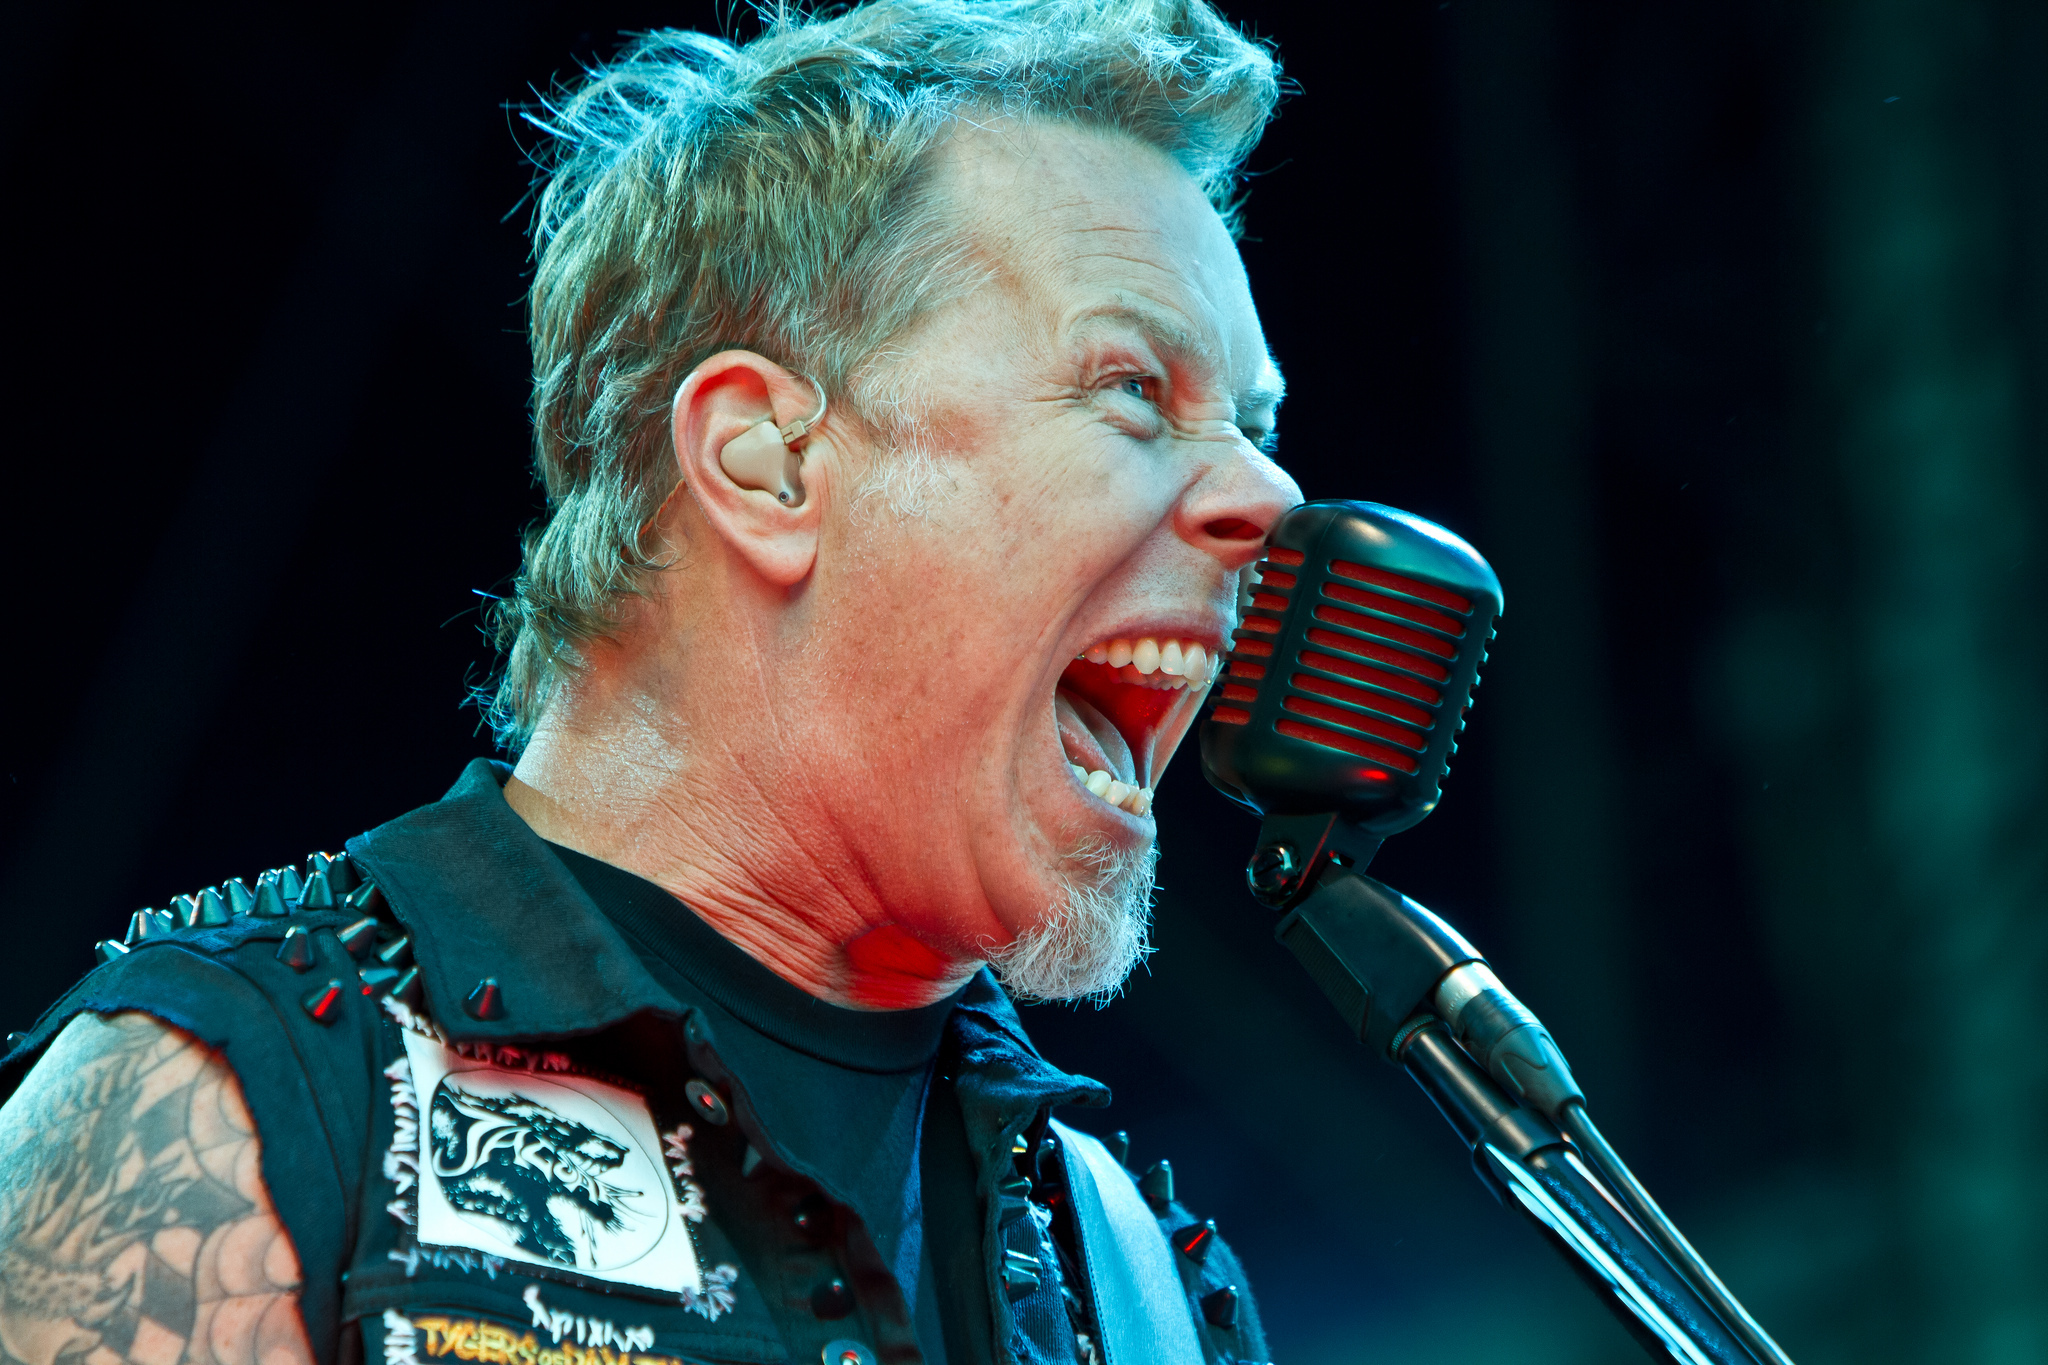 james hetfield james hetfield photo 30975468 fanpop. Black Bedroom Furniture Sets. Home Design Ideas